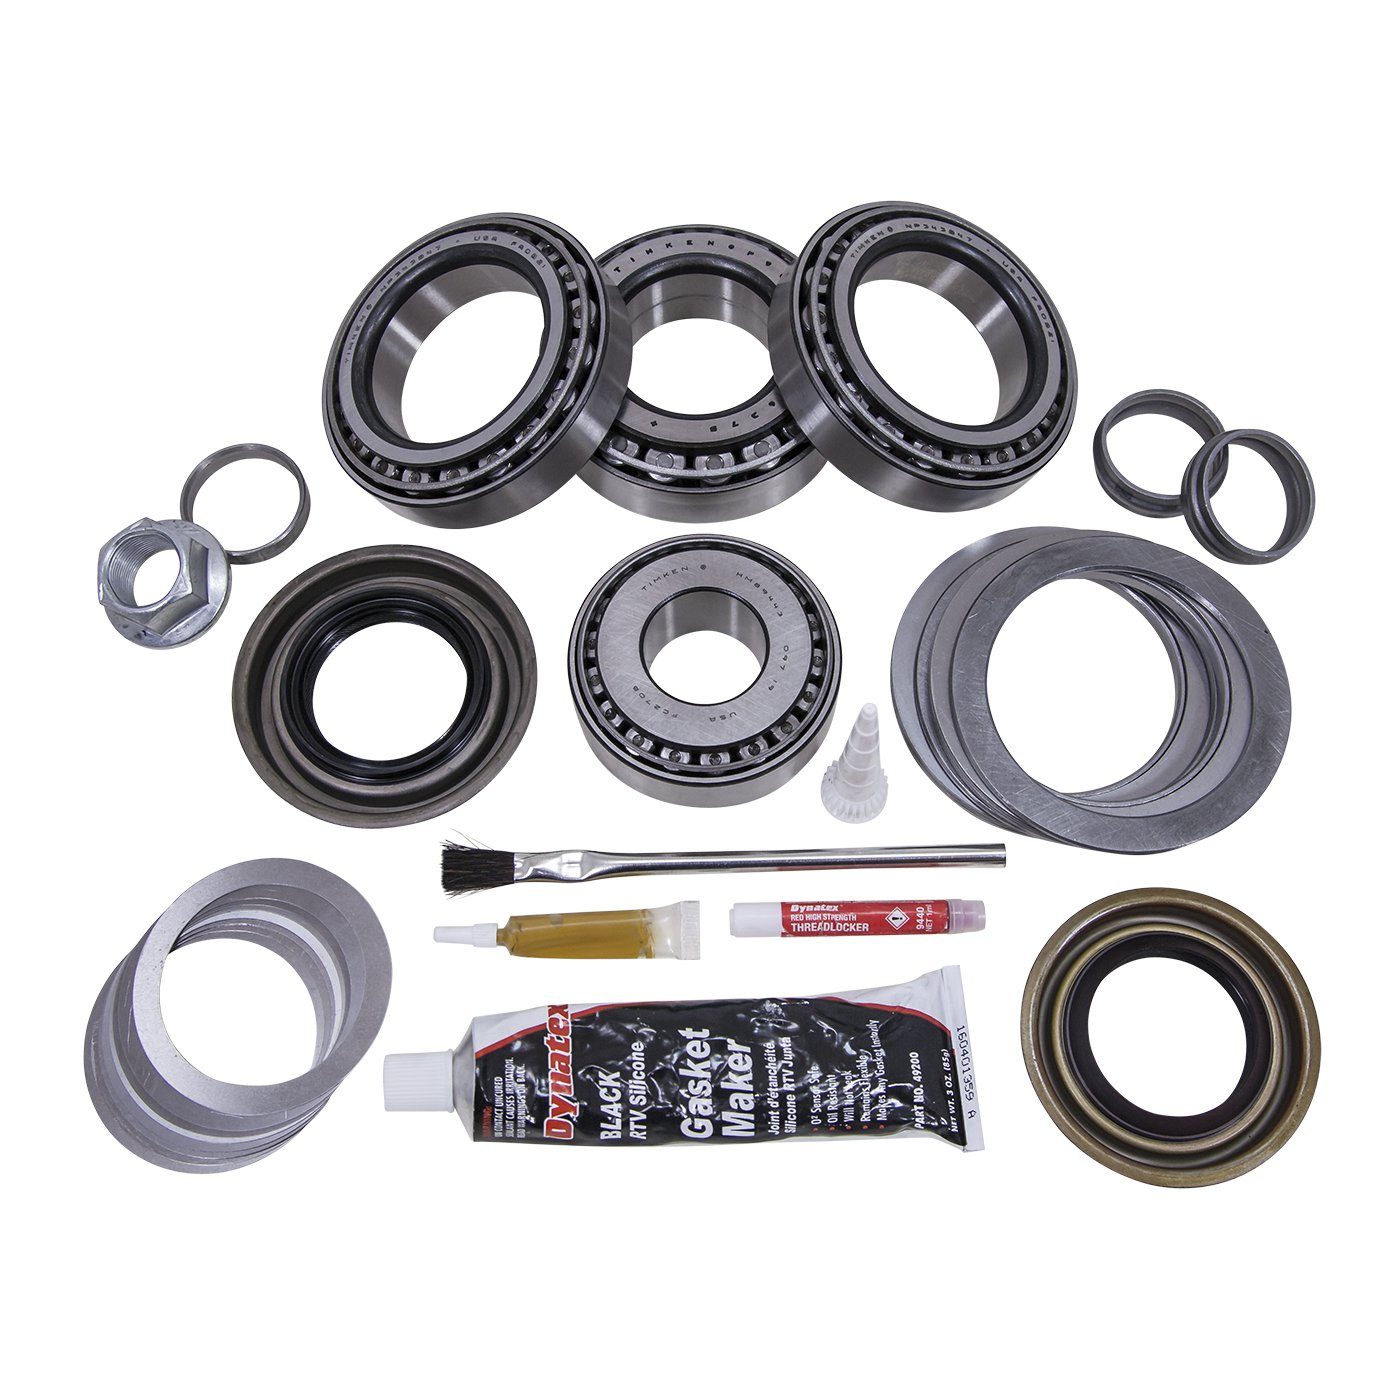 USA Standard Gear (ZK F9.75-B) Master Overhaul Kit for Ford 9.75 Differential